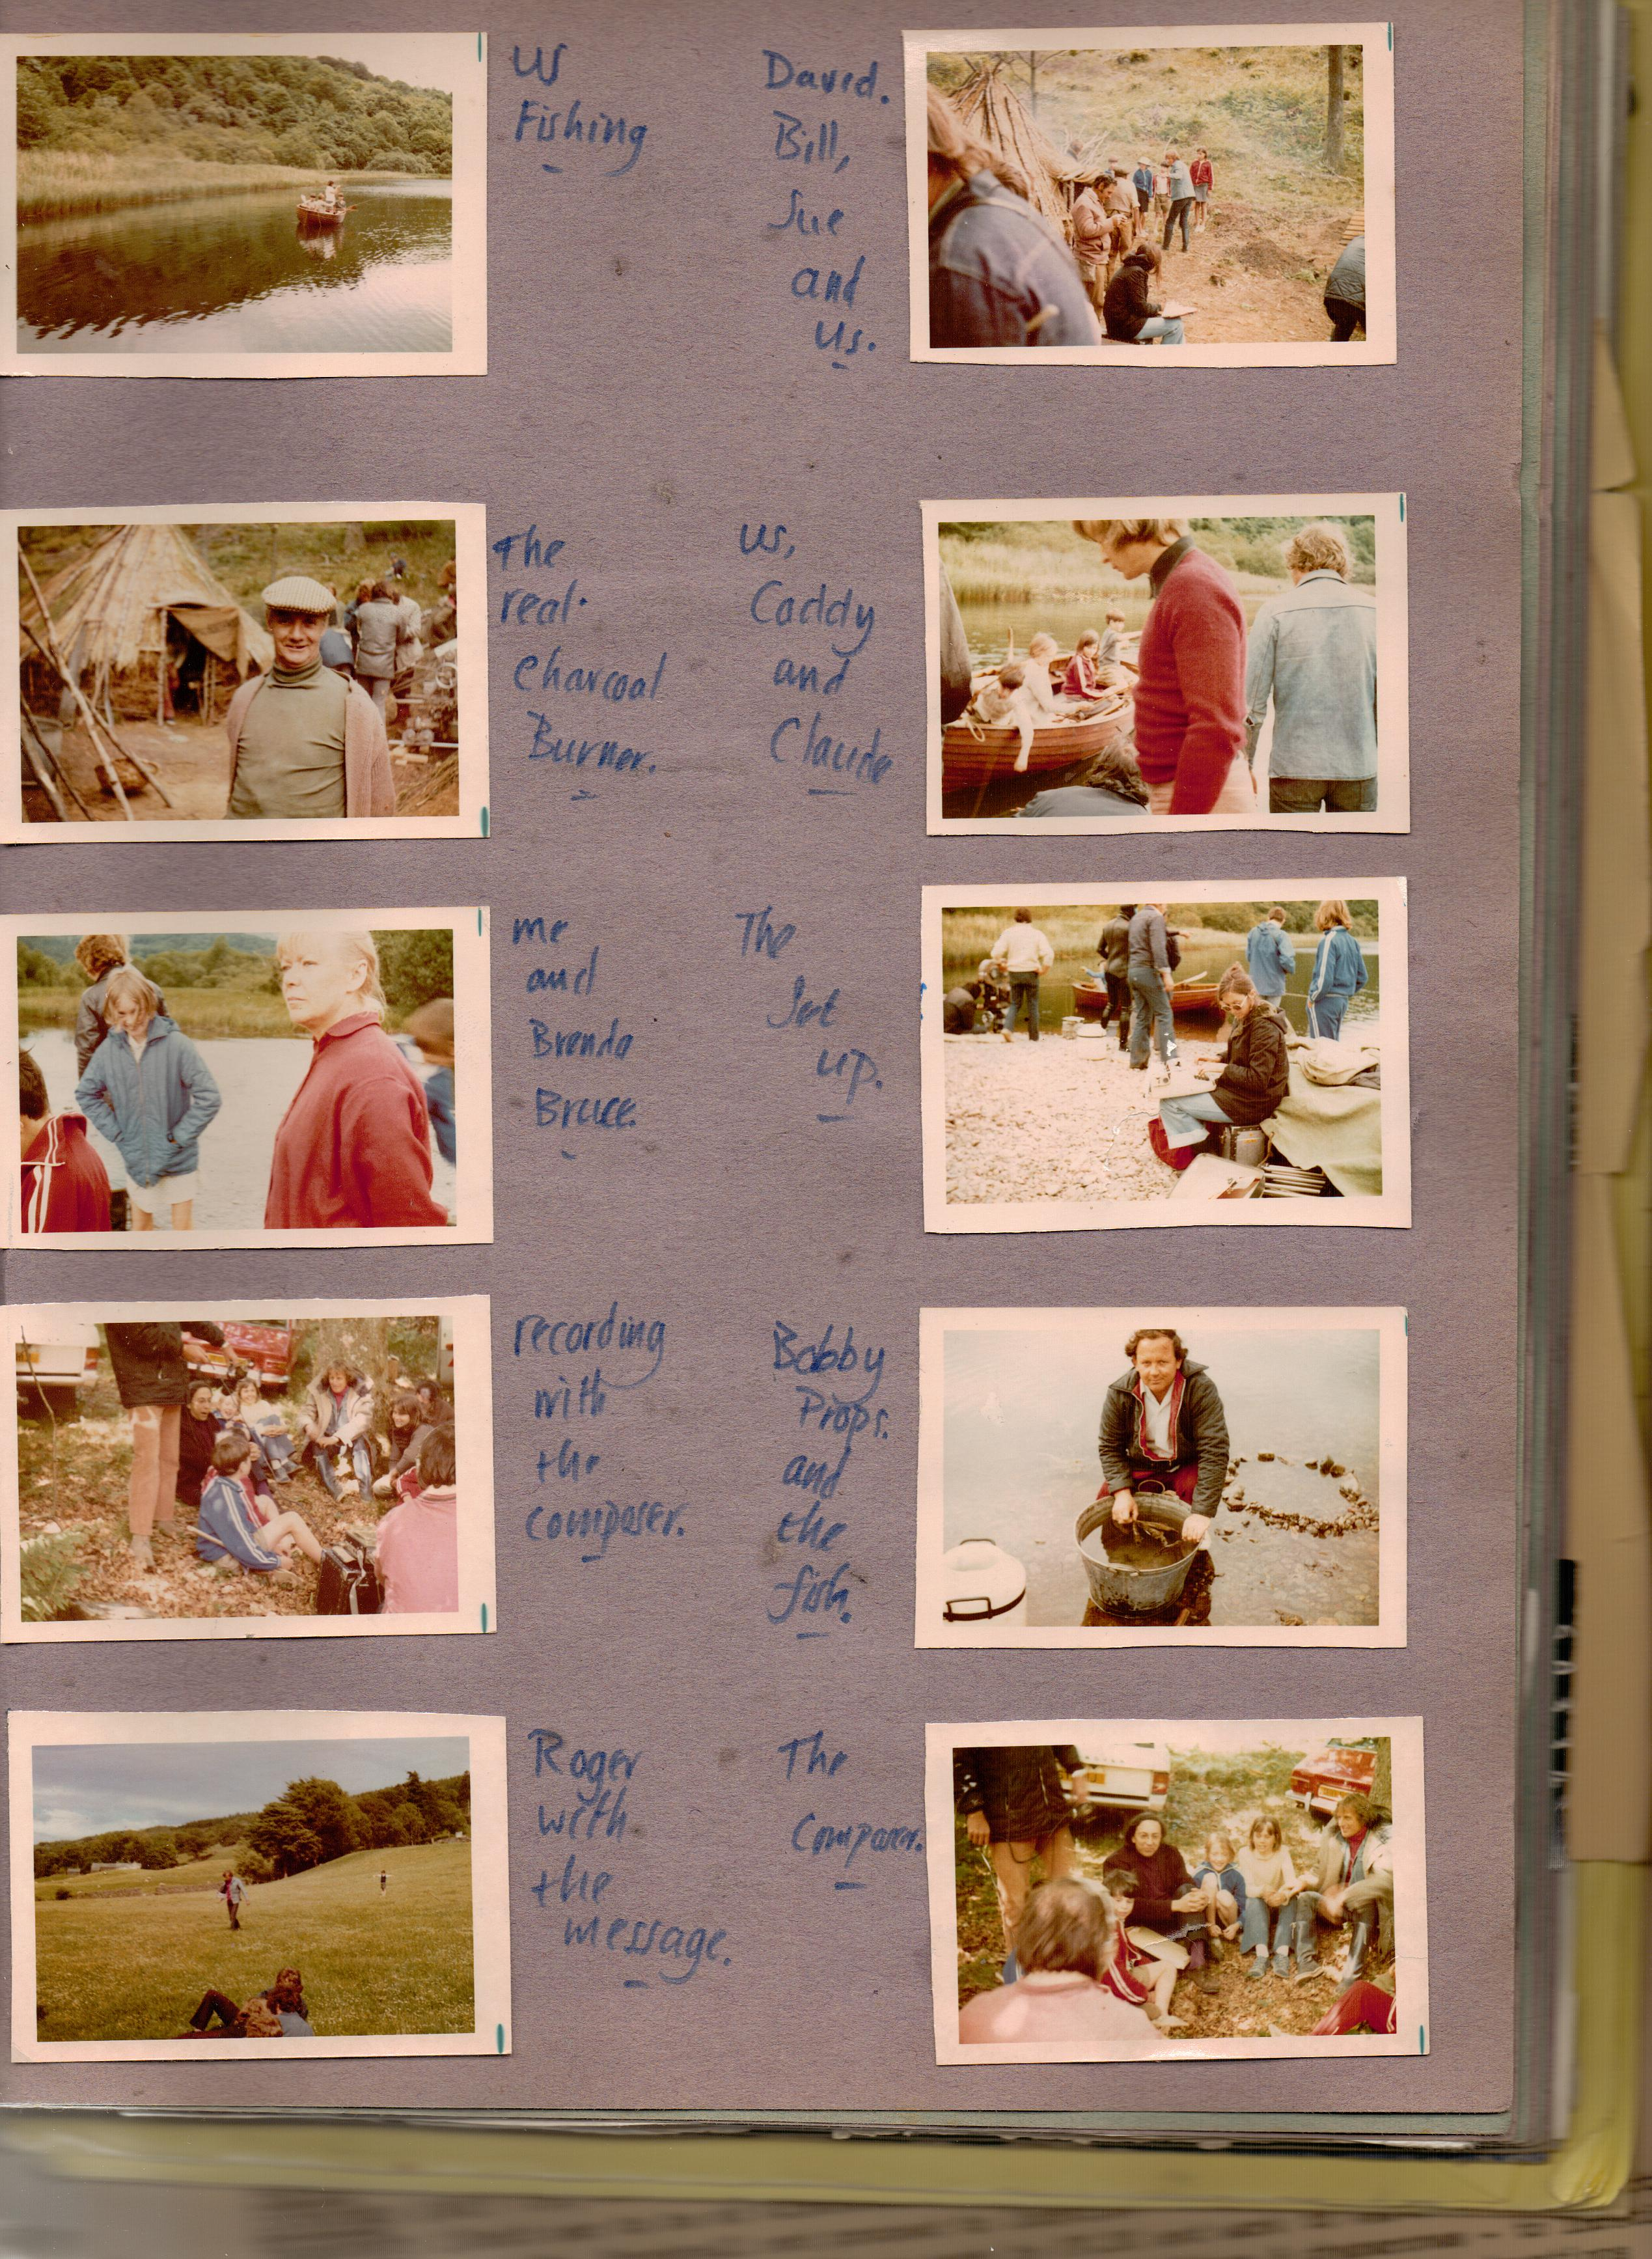 Photographs in a child's scrapbook